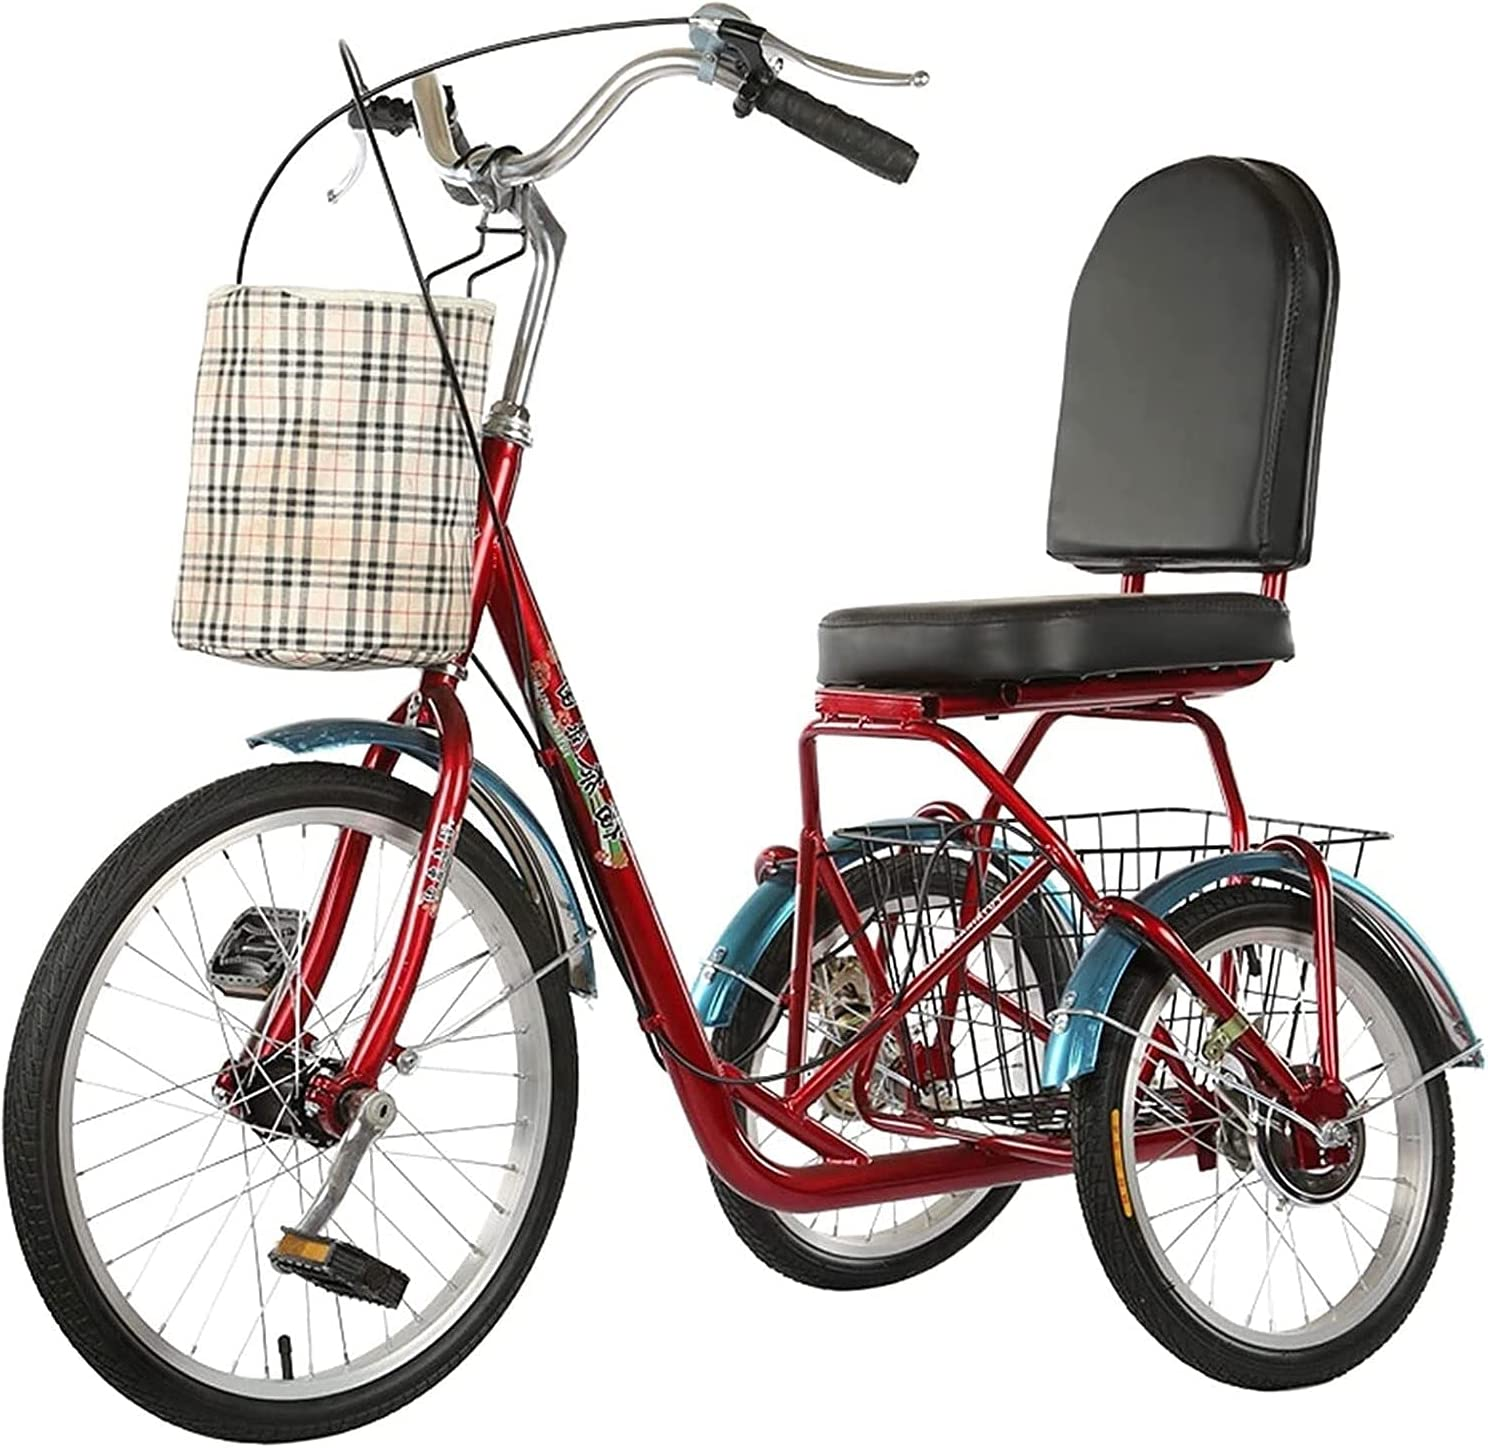 Adult Tricycles Max 67% Challenge the lowest price of Japan OFF 3 Wheel Bikes Adults for 1 Tricycle